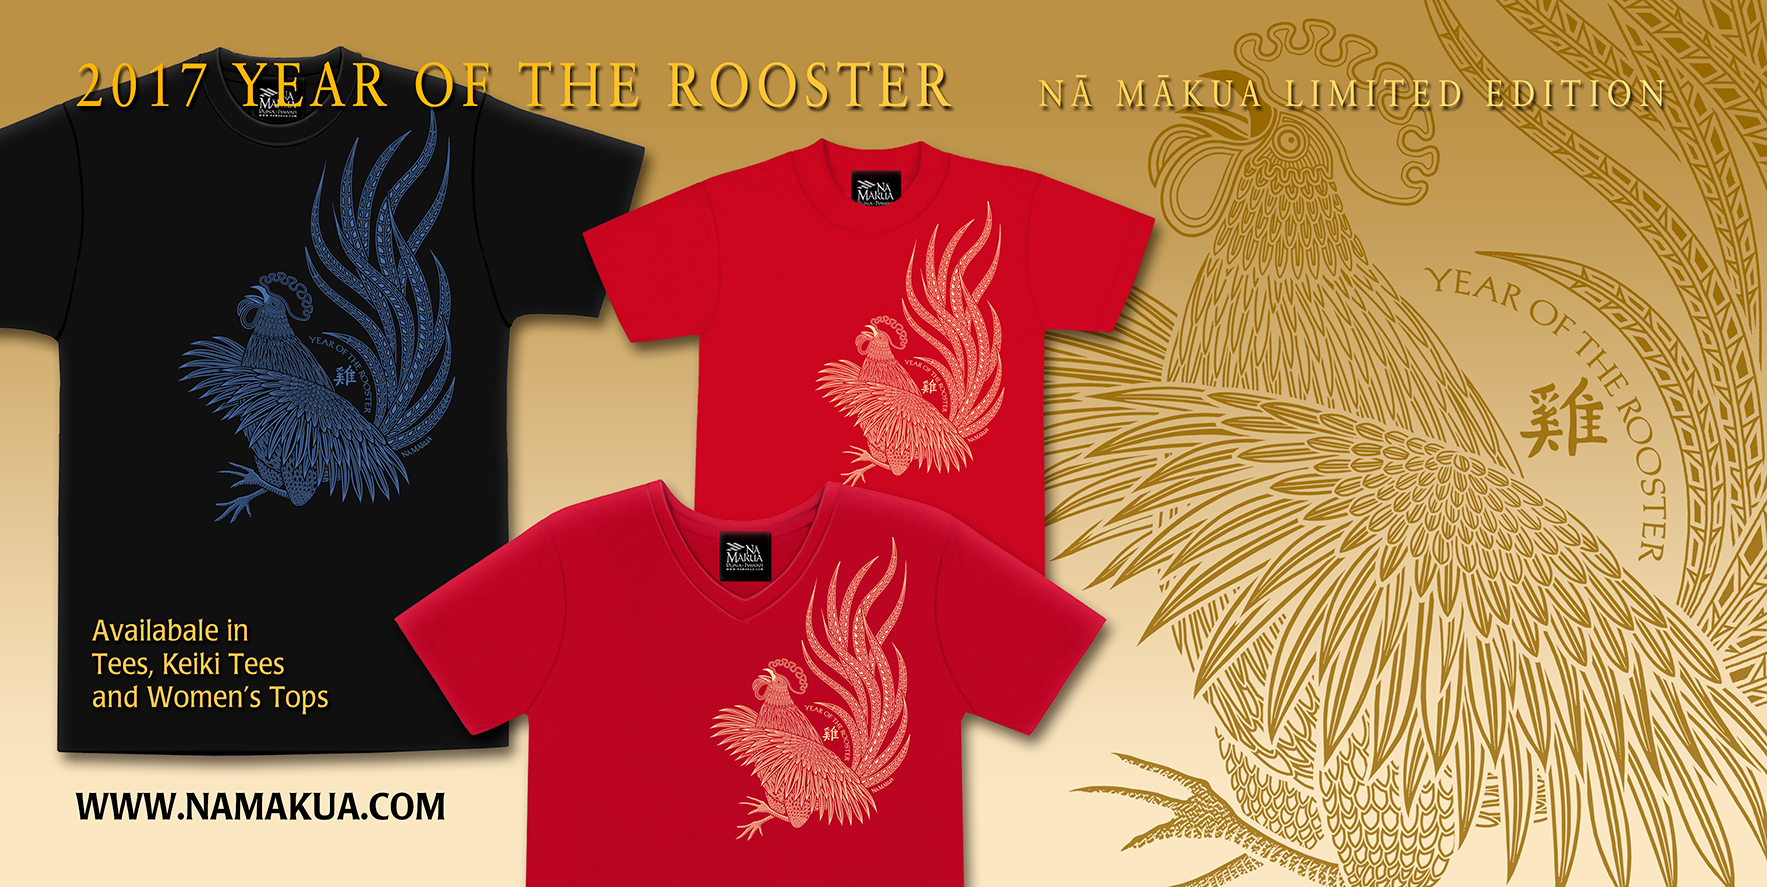 2017 Year of the Rooster Design